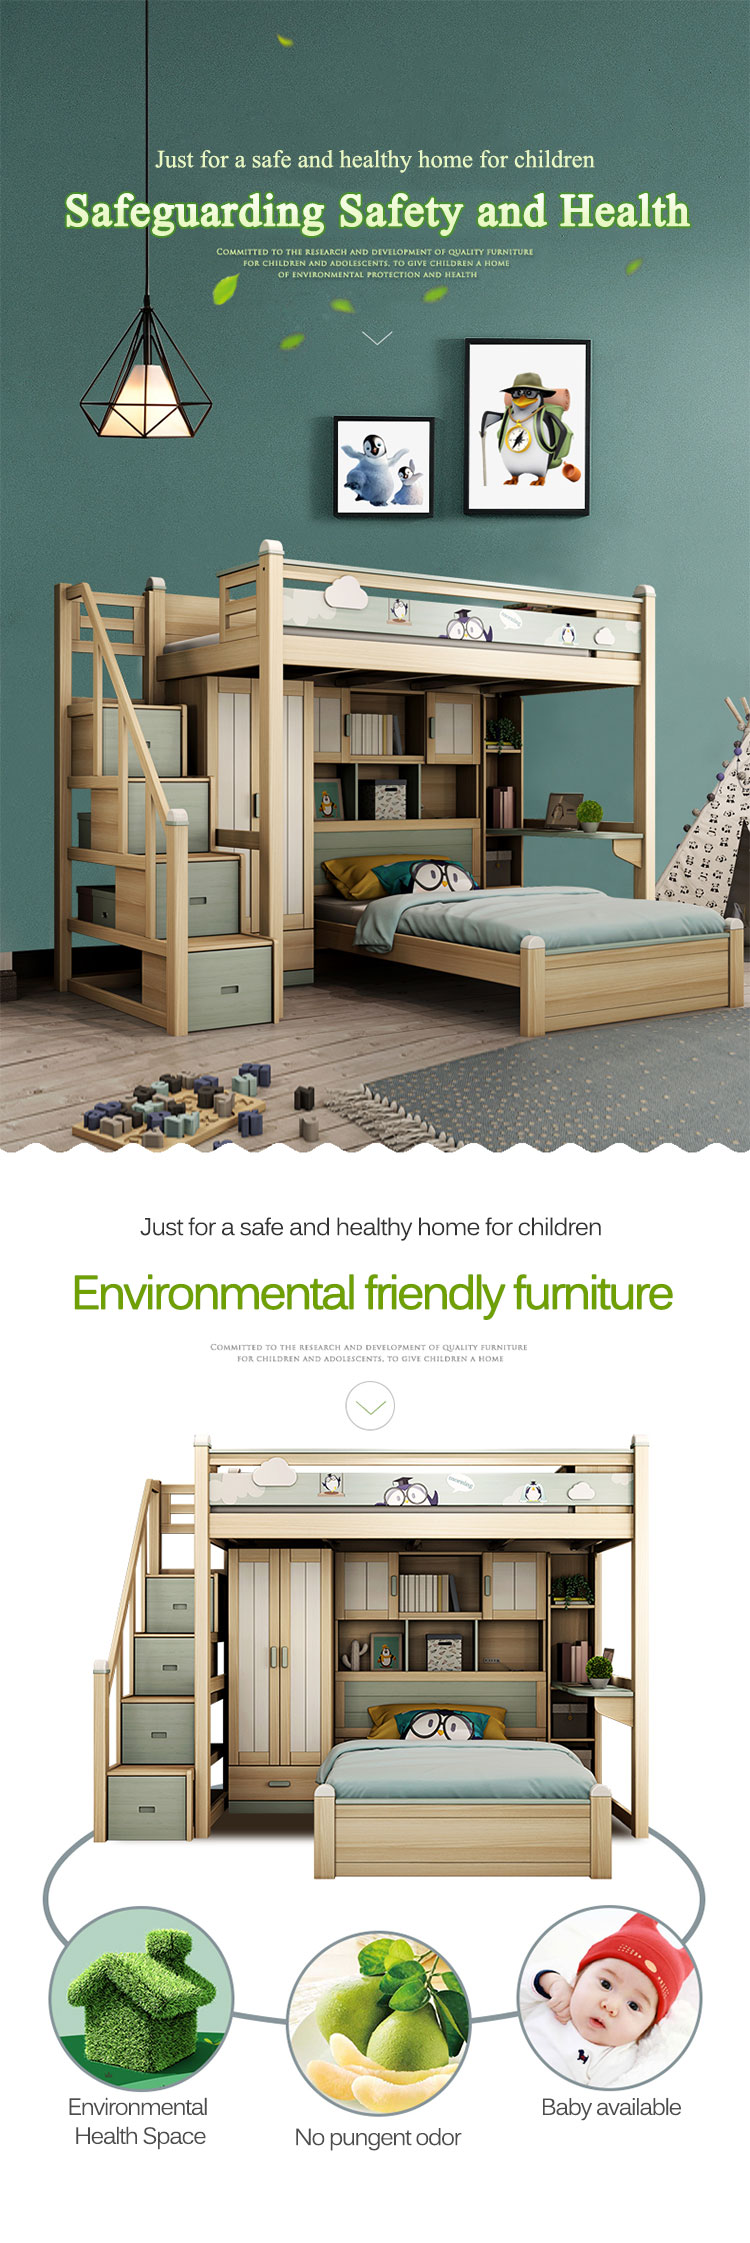 Picture of: Bedroom Furniture Bunk Bed Multi Functional Elevated Bed Space Saving Kids Bunk Bed With Wardrobe Buy Bedroom Furniture Bunk Bed Multi Functional Elevated Bed Kids Bunk Bed With Wardrobe Product On Alibaba Com